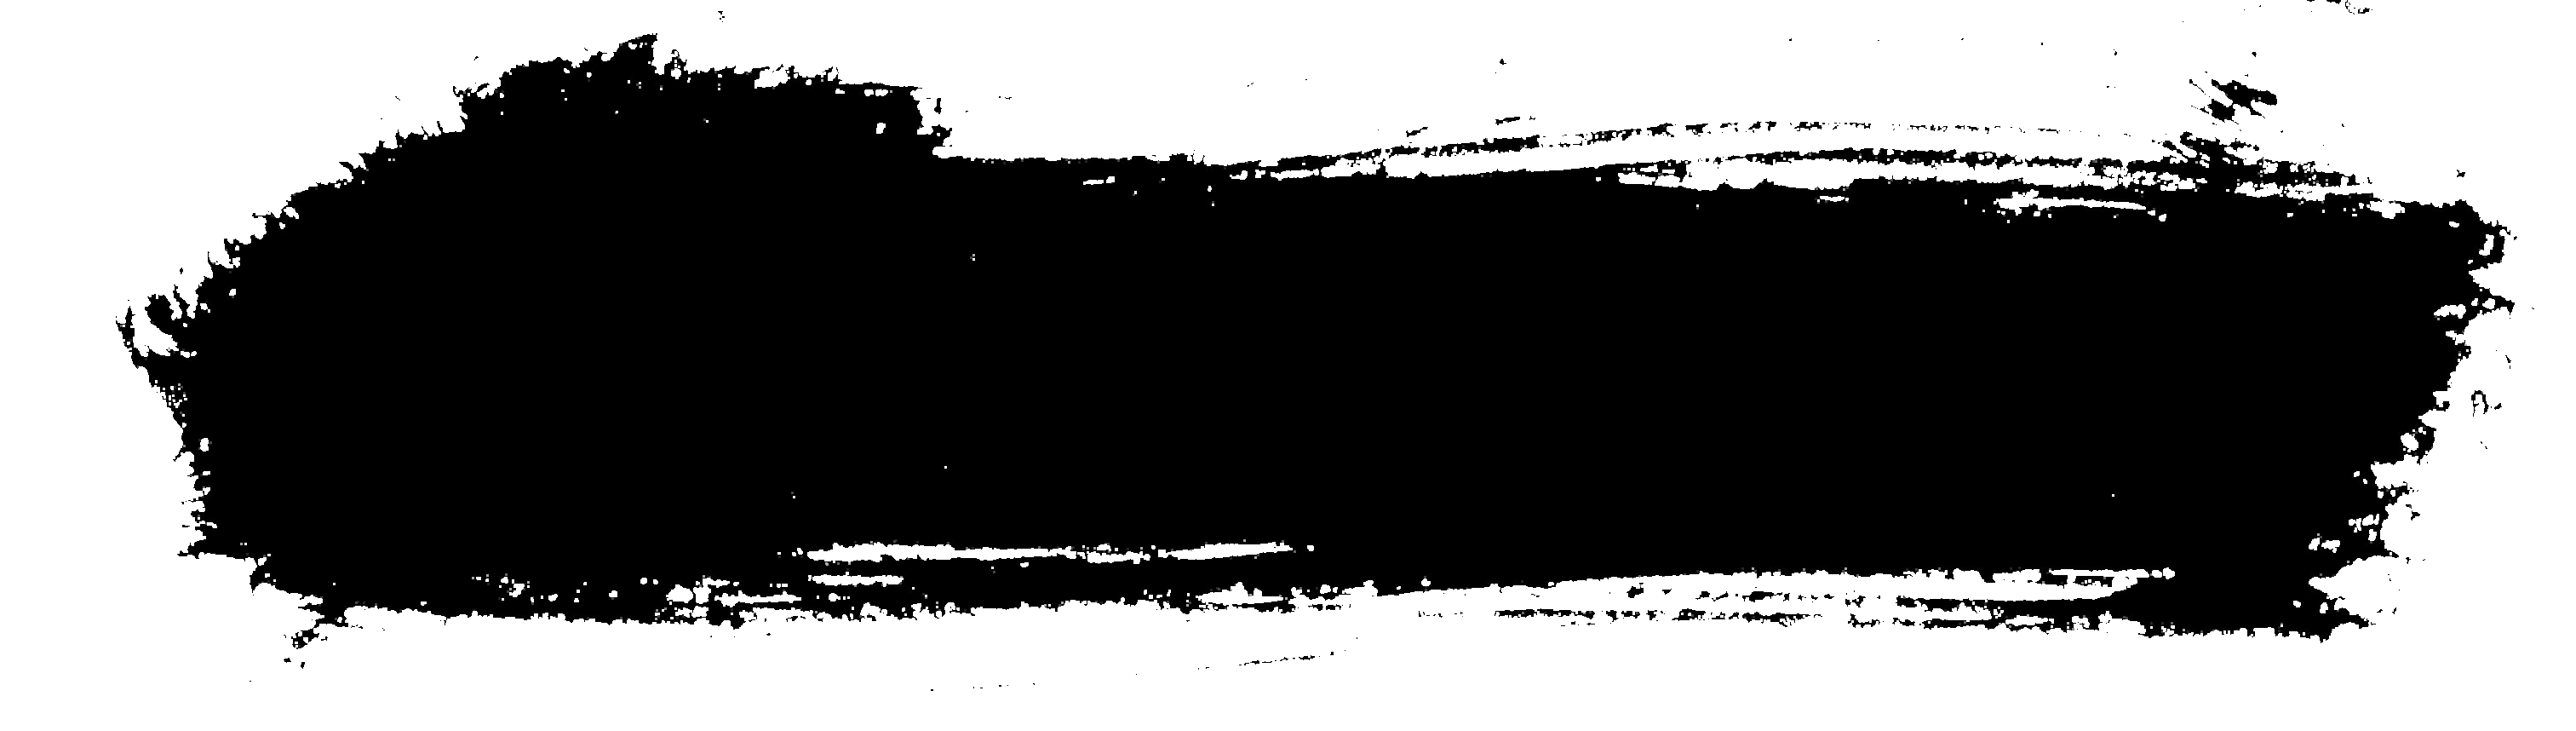 Black banner png. Grunge brush stroke